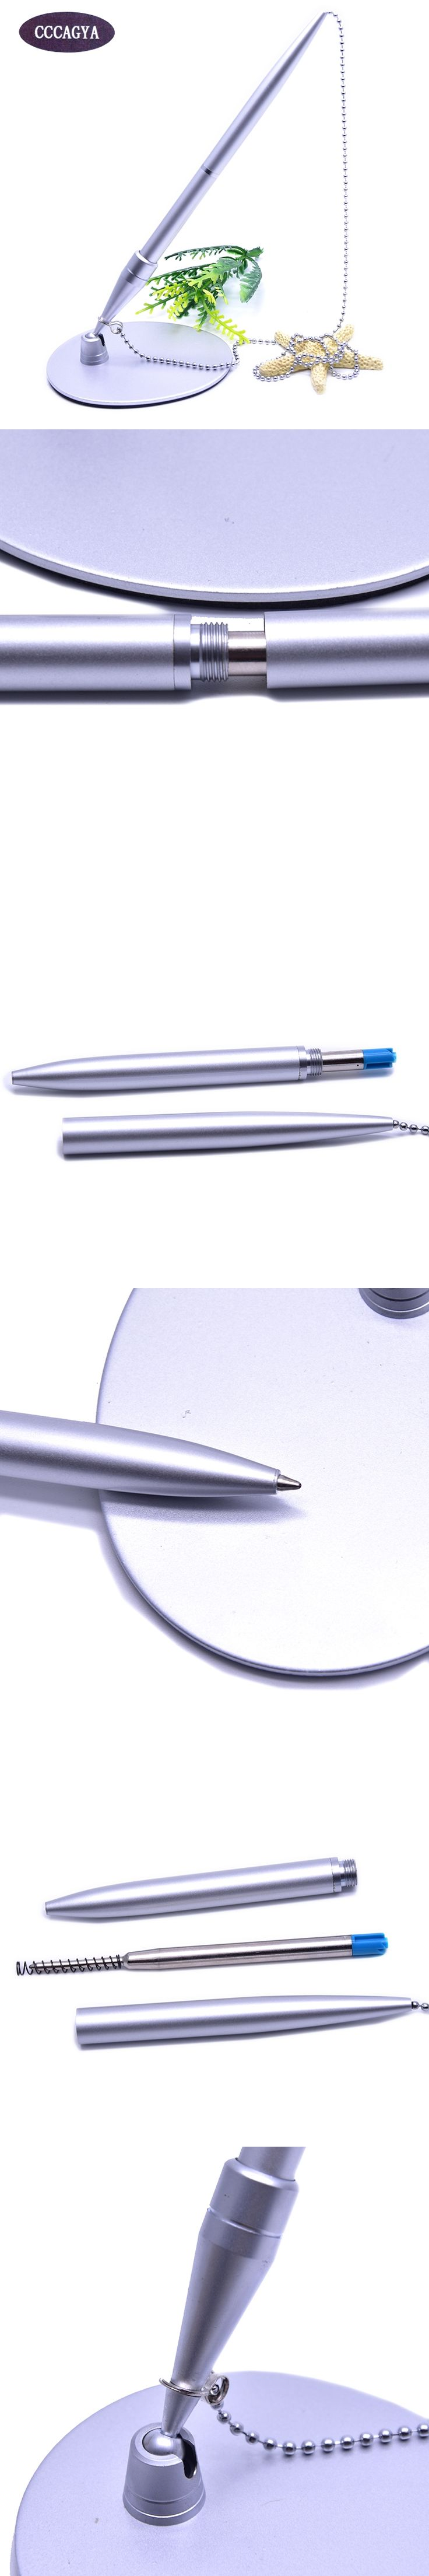 CCCAGYA C020 new arrival metal Base ball pen for Writing Stationery Office & School Pen Supplies Gift Business pens